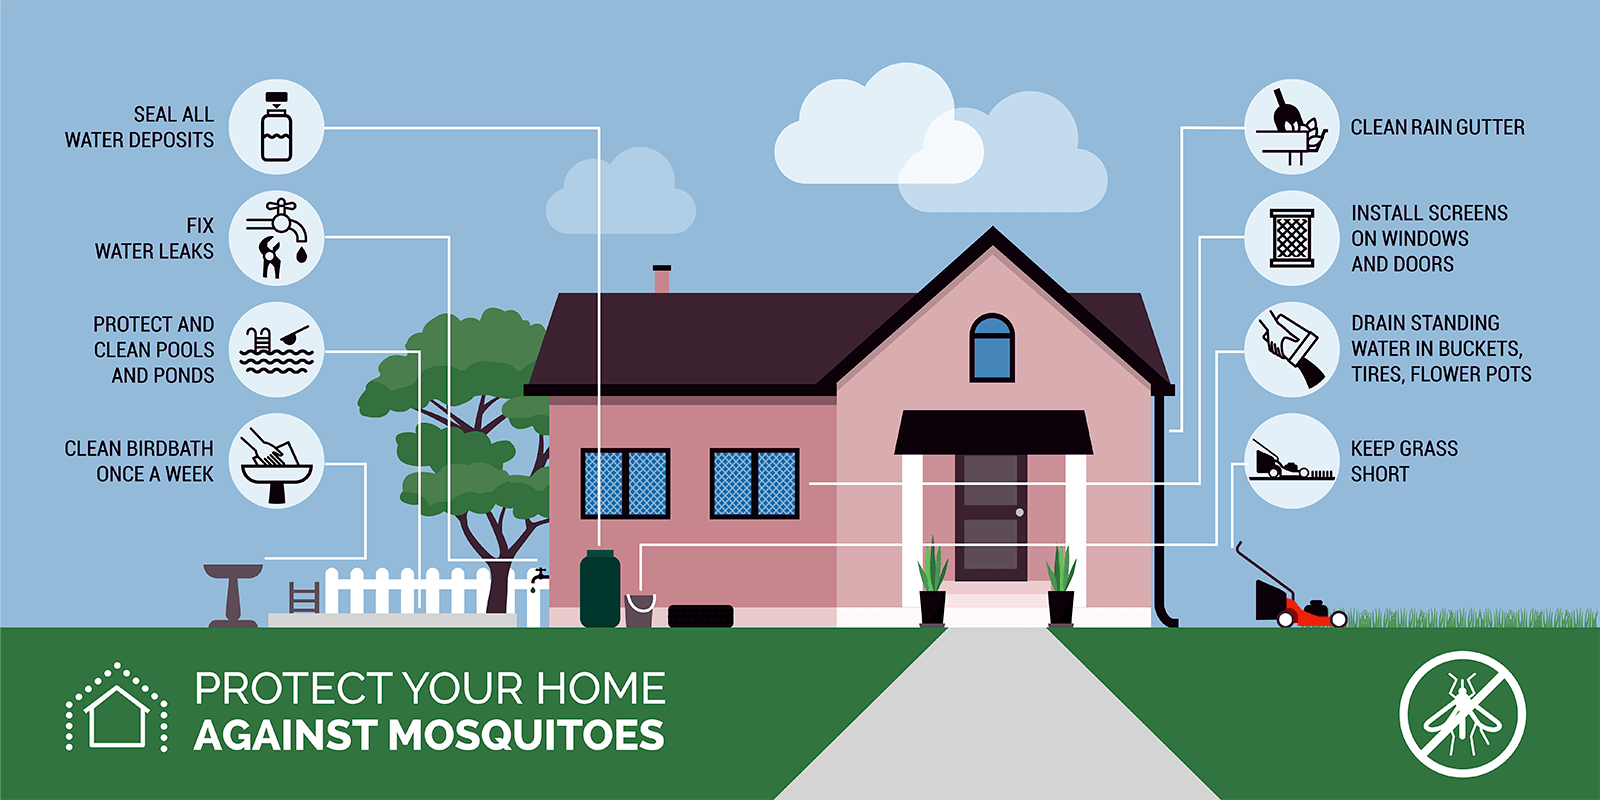 Protecting home from mosquitoes